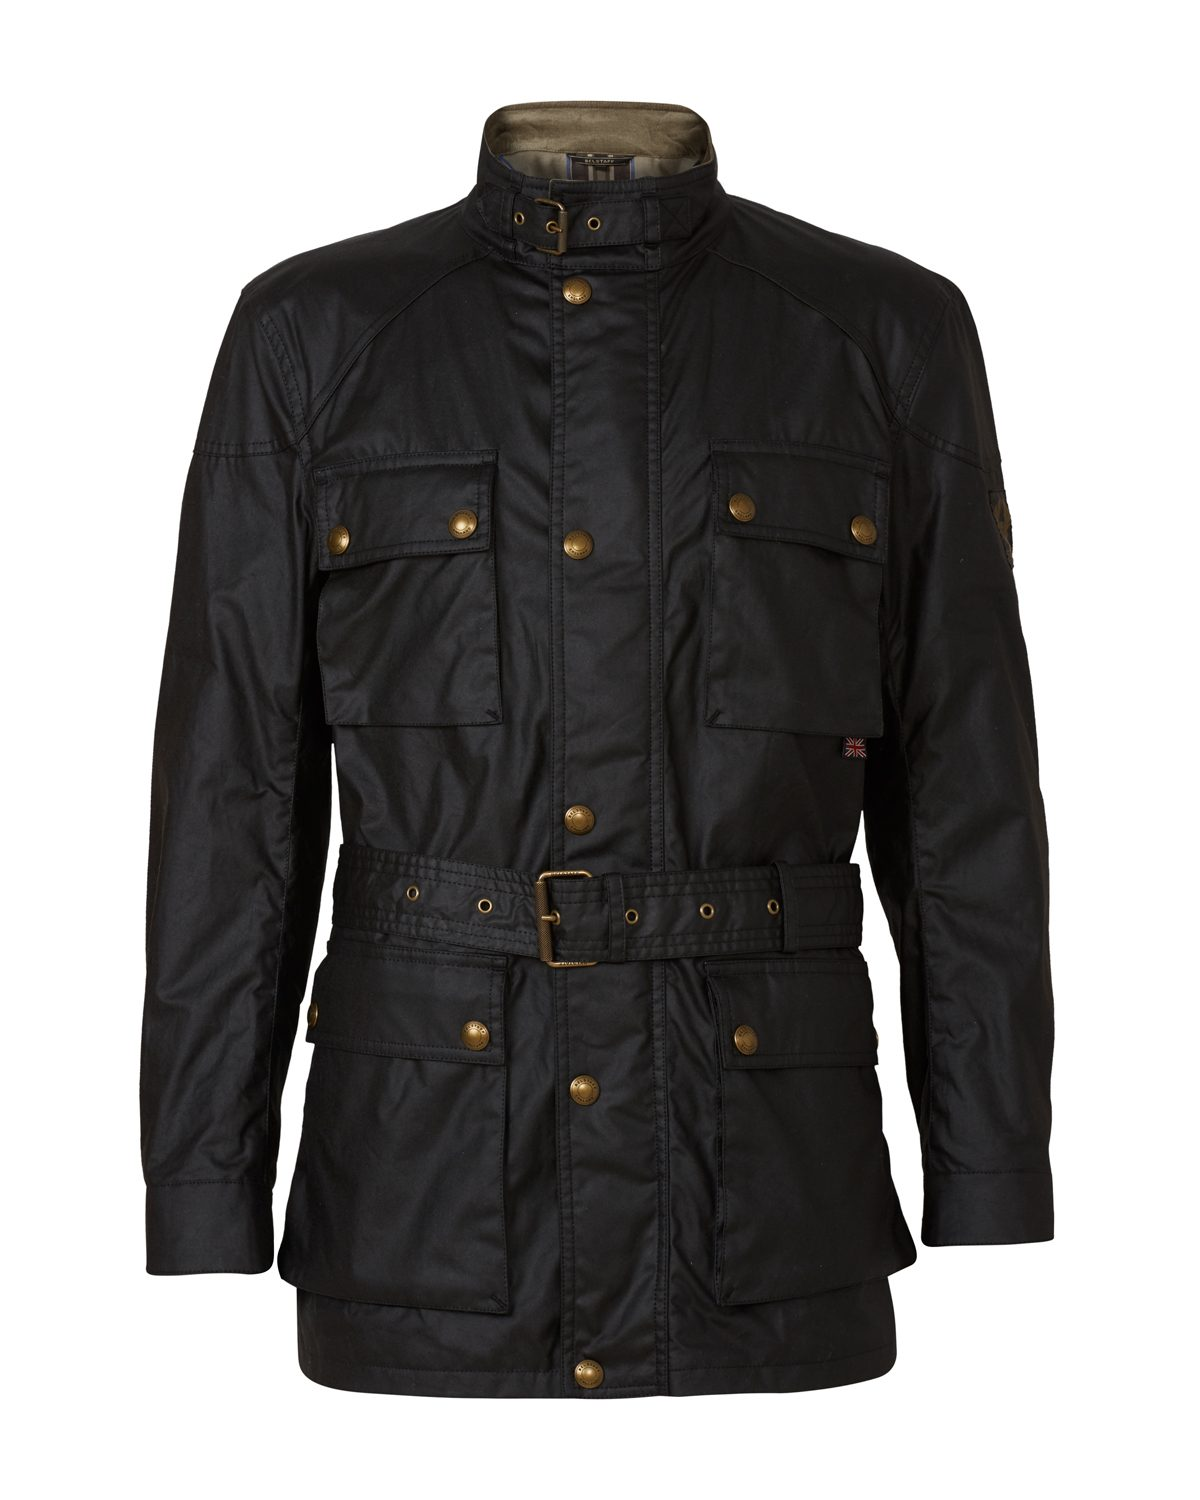 The Barbour waxed cotton Jacket or Barbour field jacket for men is a wardrobe must-have, perfect for country and city settings. More prominent in city settings, the Barbour jacket for men is perfect for throwing over the top of your suit or casual outfit to keep the elements out.